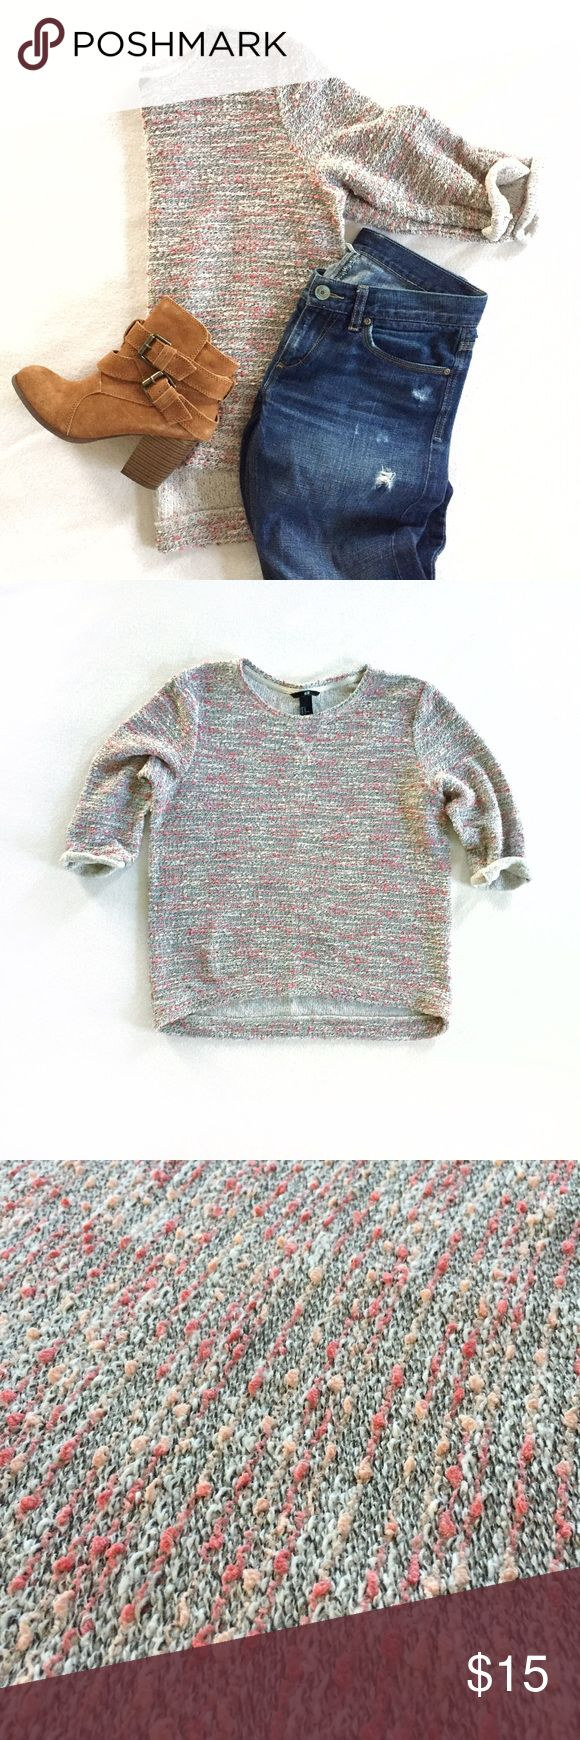 H&M 3/4 sleeve oversized pink gray marled sweater Gives a cute casual look when paired with distressed denim and booties. Slightly longer in the back. Lightweight knit. 3/4 sleeves are rolled and stitched to stay up. In excellent used condition. Size medium, fits an xs or small as well for a looser look. Underarm to underarm measures 21.5 inches, shoulder to bottom measures 23.5 inches (26.5 in the back). H&M Sweaters Crew & Scoop Necks